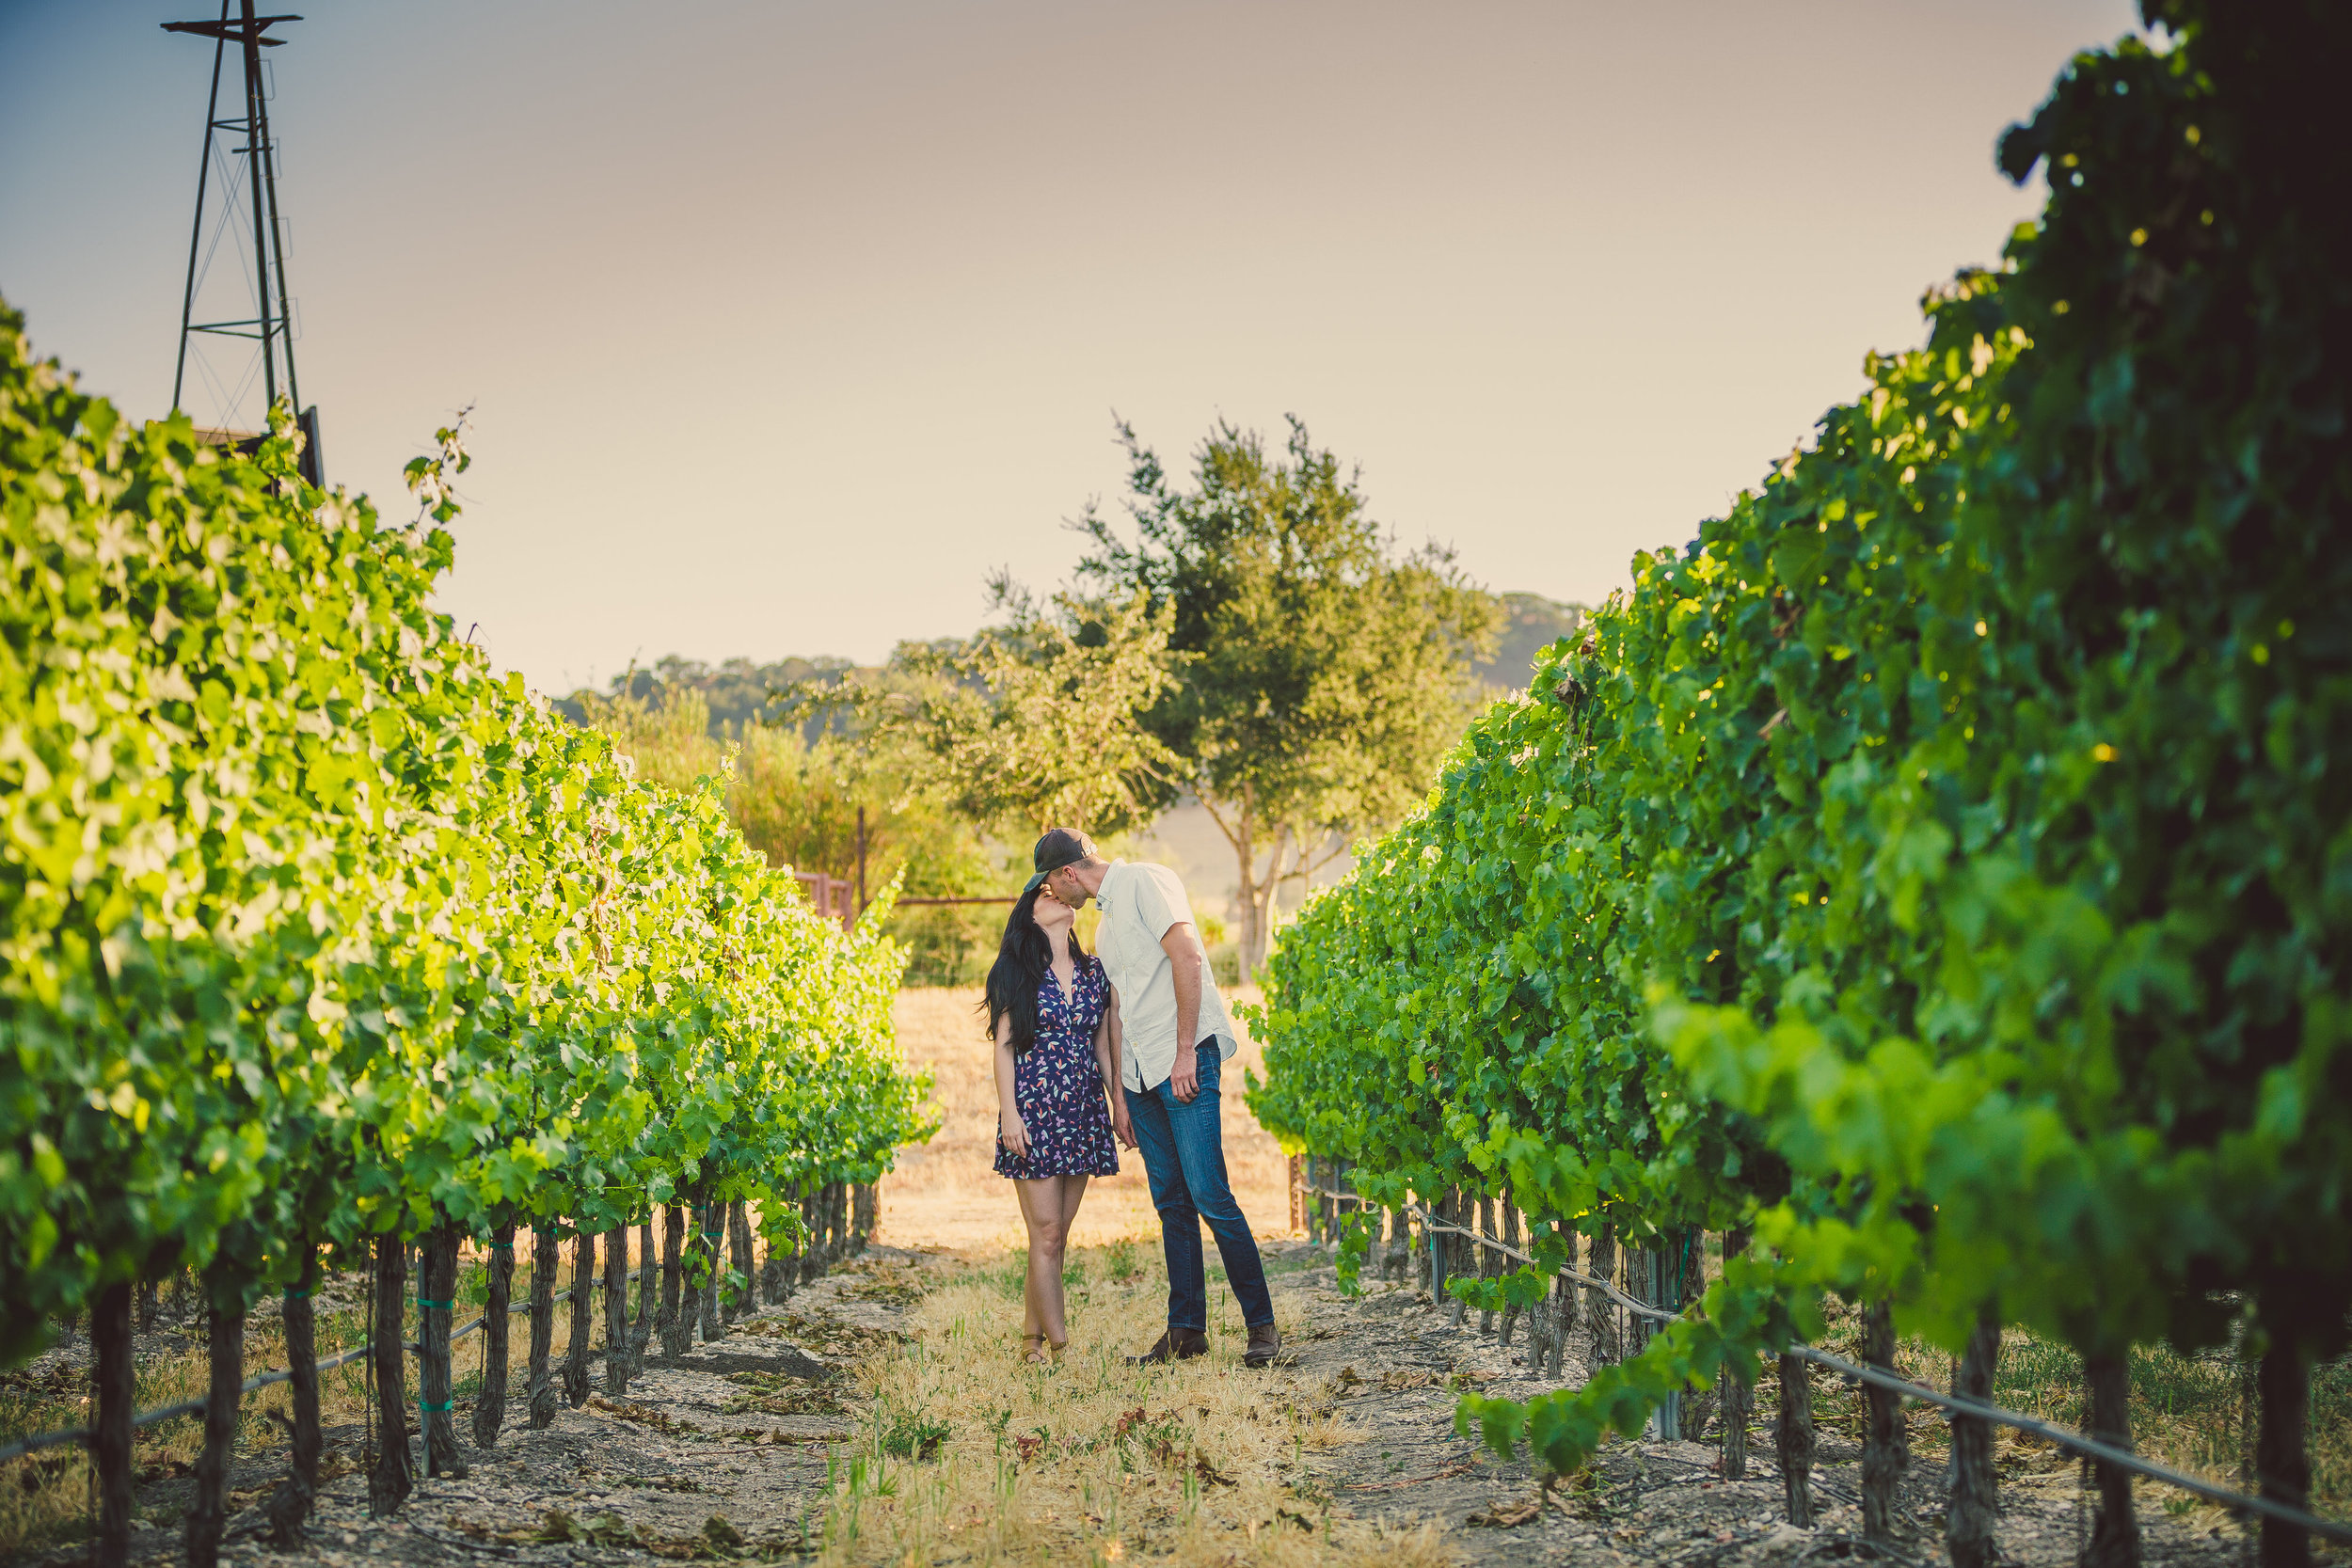 Sarloos Vineyard, Santa Ynez, CA